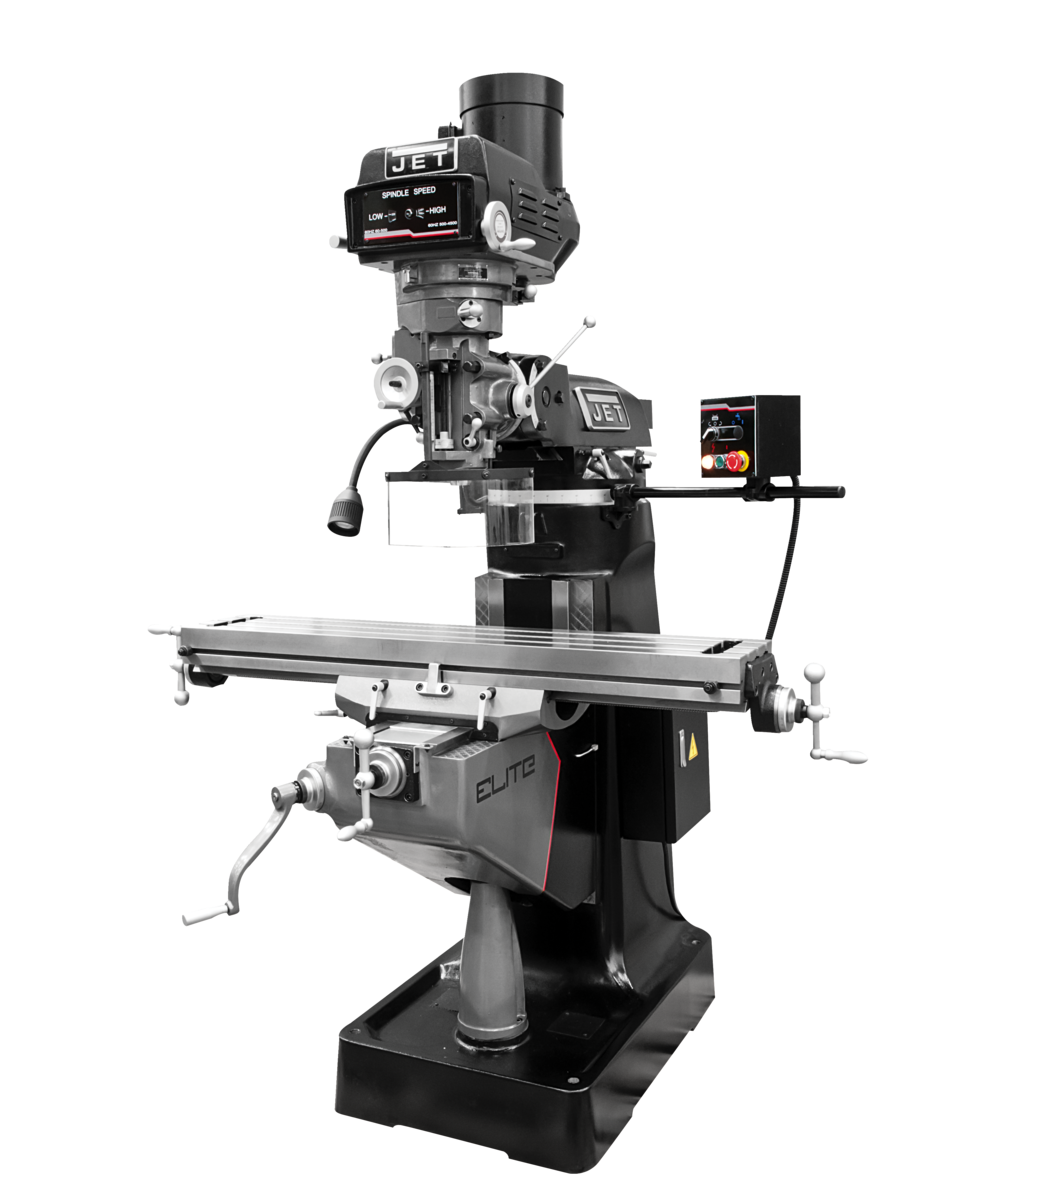 ETM-949 Mill with 3-Axis Newall DP700 (Knee) DRO and X-Axis JET Powerfeed